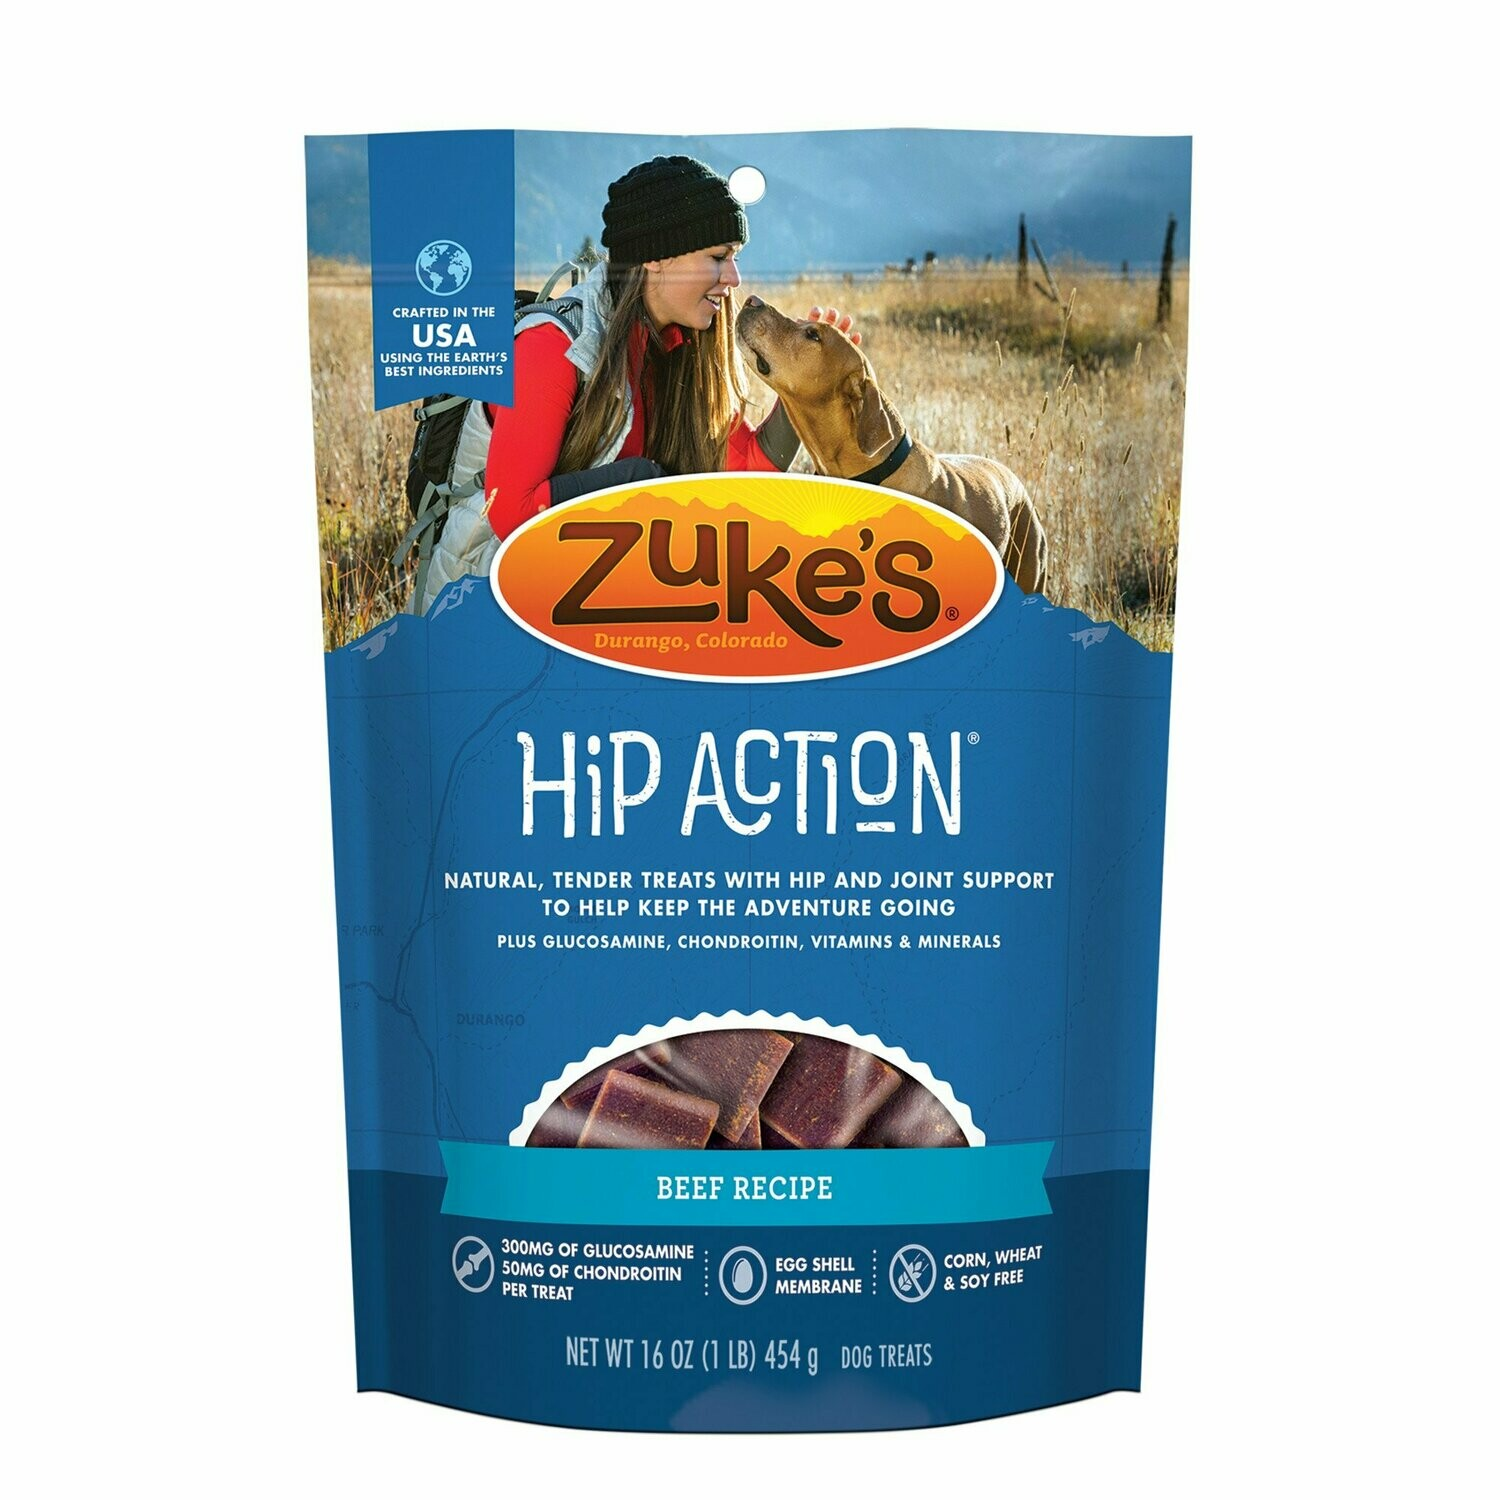 Zuke hip action natural tender treats with hip and joint support plus glucosamine constraints and vitamins and minerals beef recipe 16 ounces (1/20)